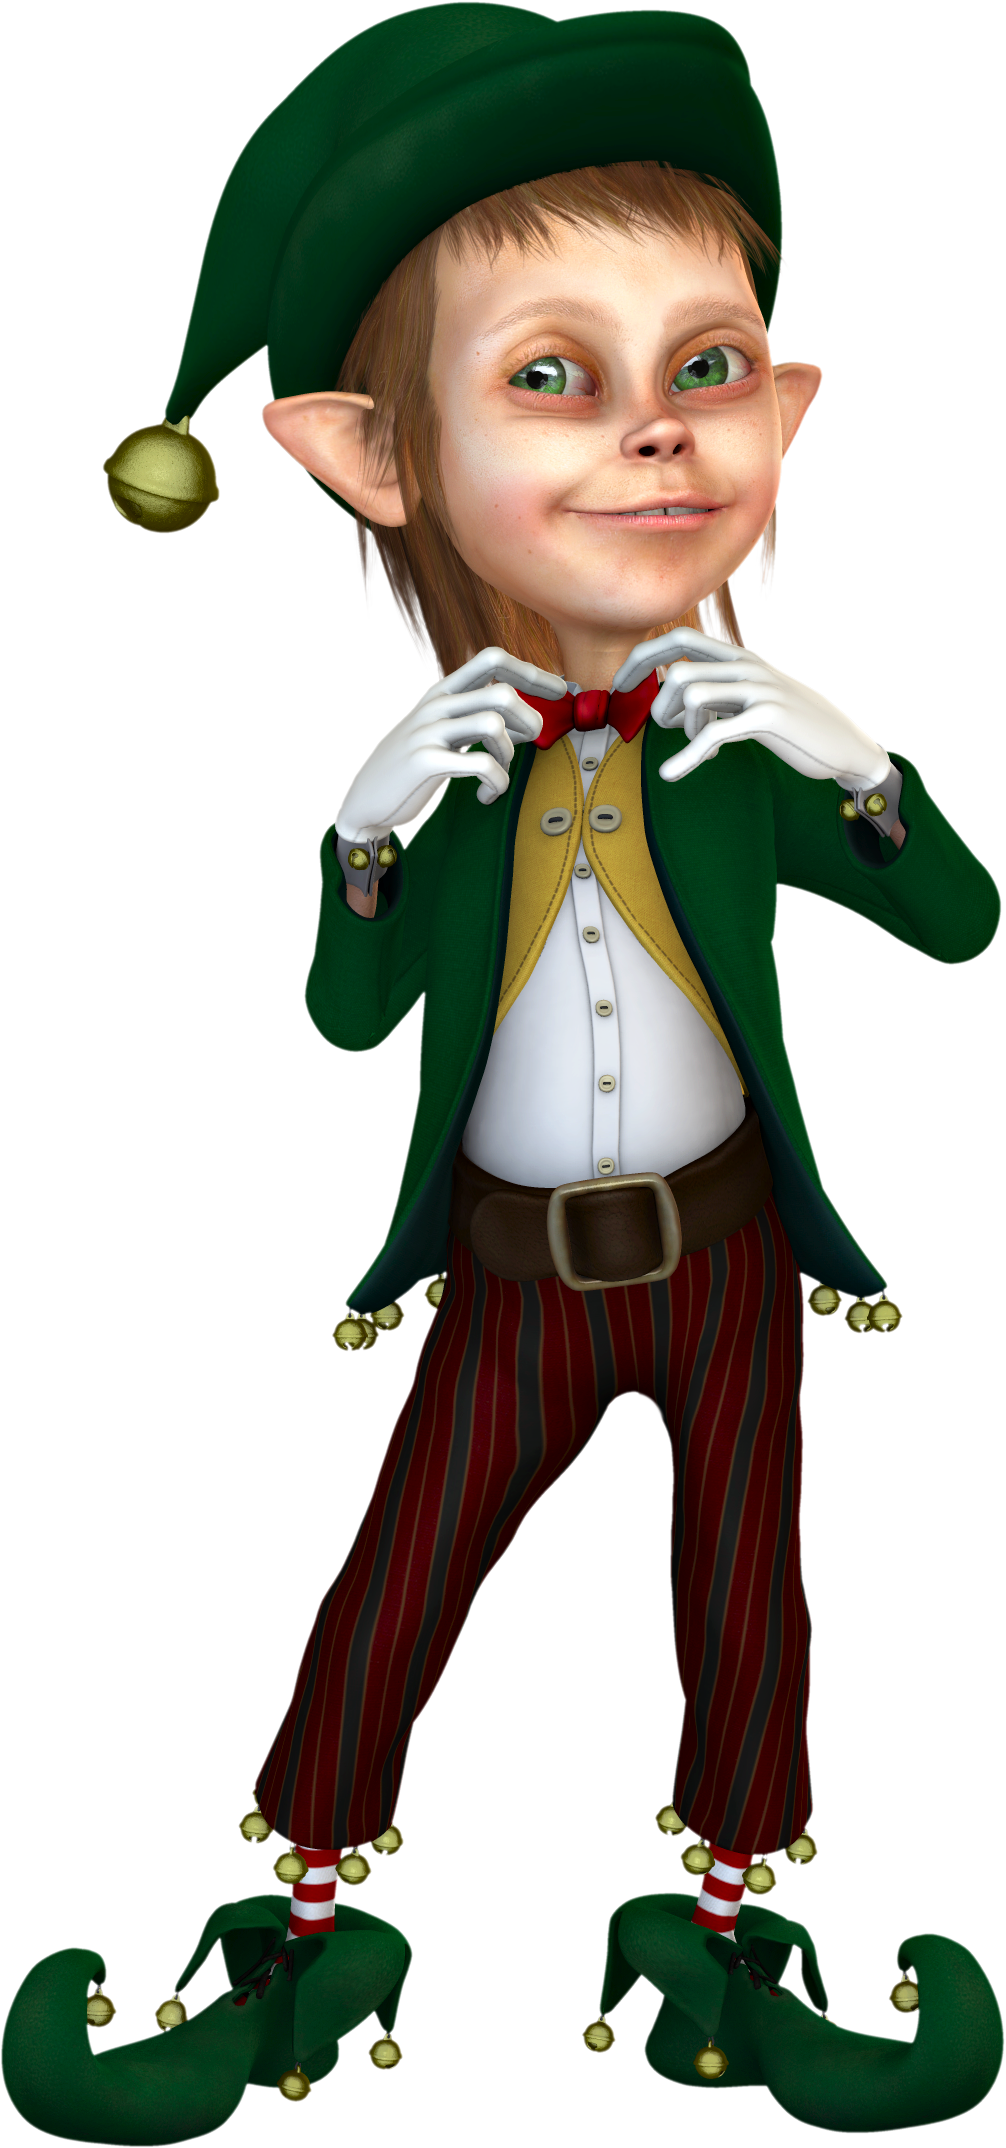 christmas elf clipart free christmas elves clipart christmas dancing elves clipart